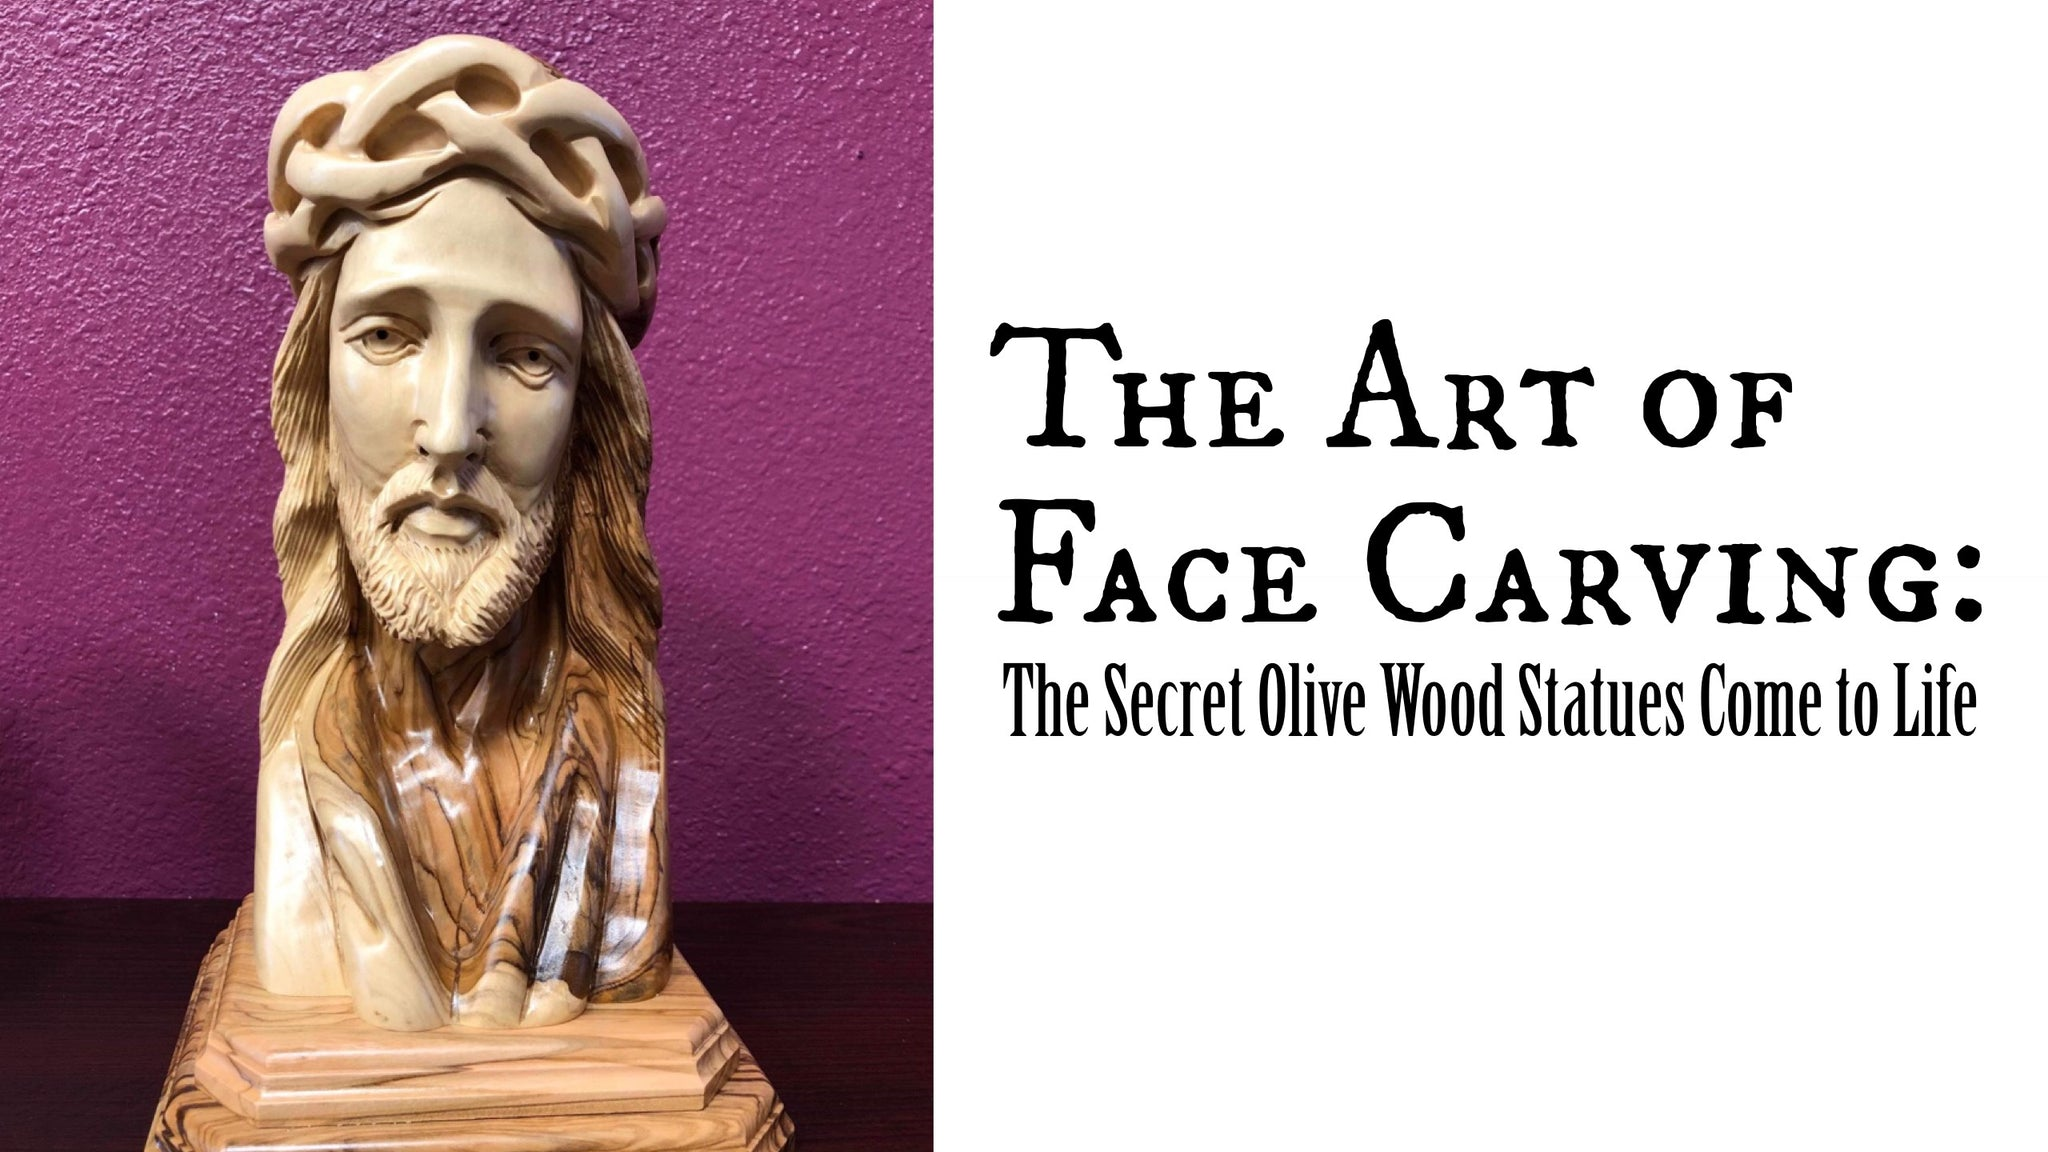 The Art of Face Carving: The Secret Olive Wood Statues Come to Life